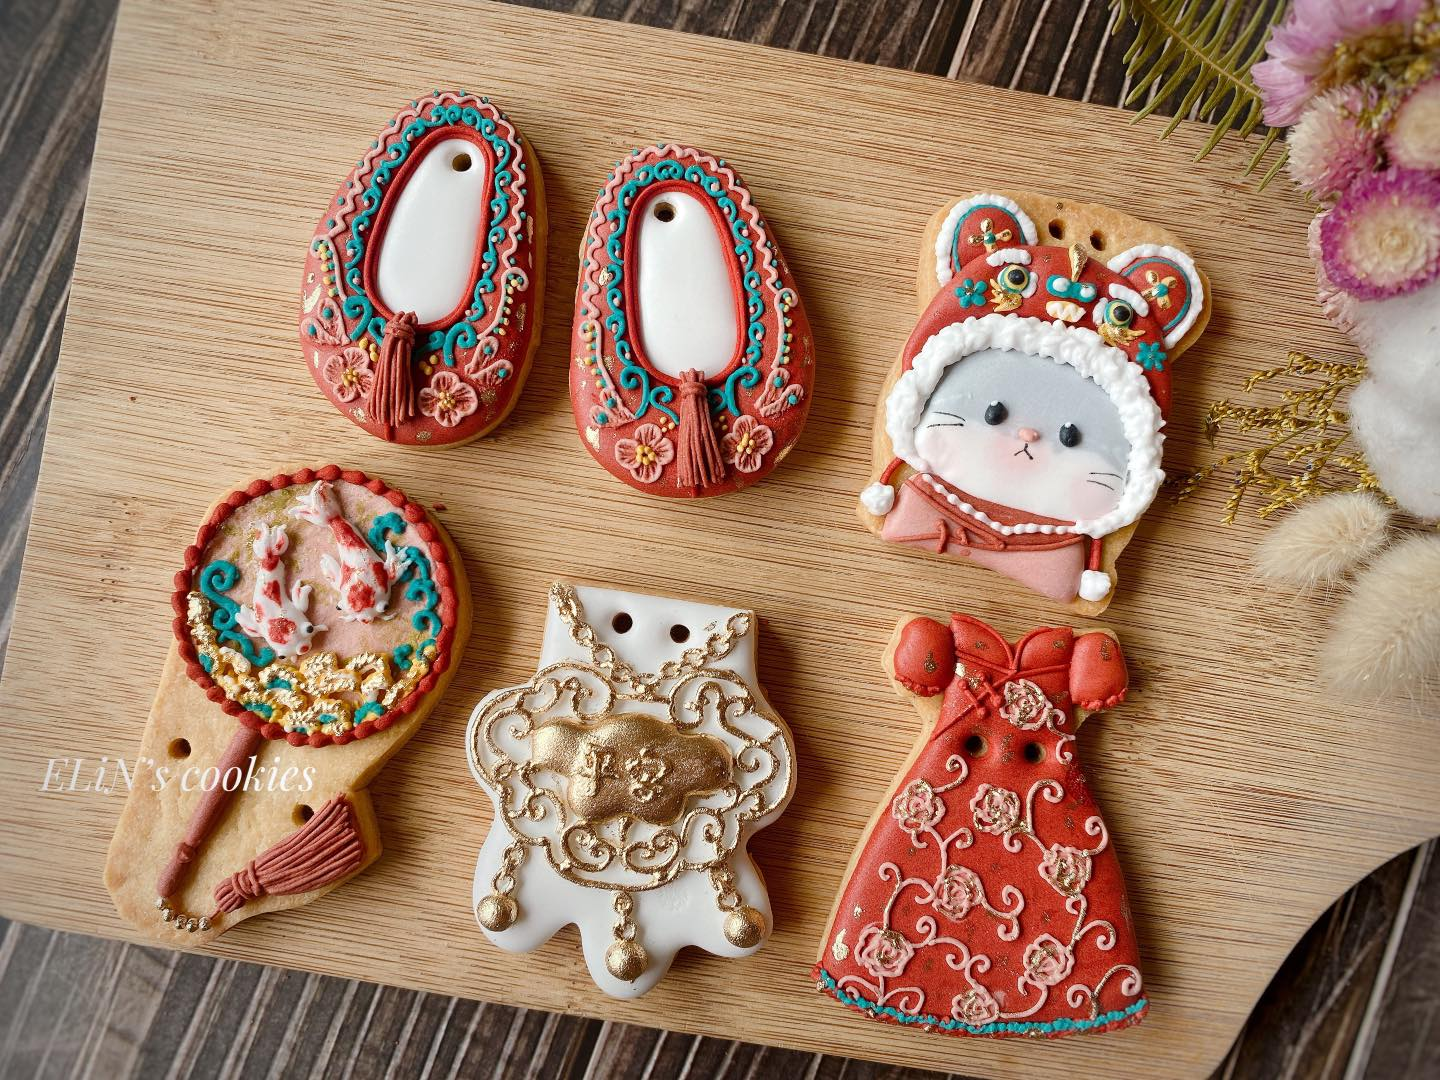 royalicing_cookie_chinesestyle